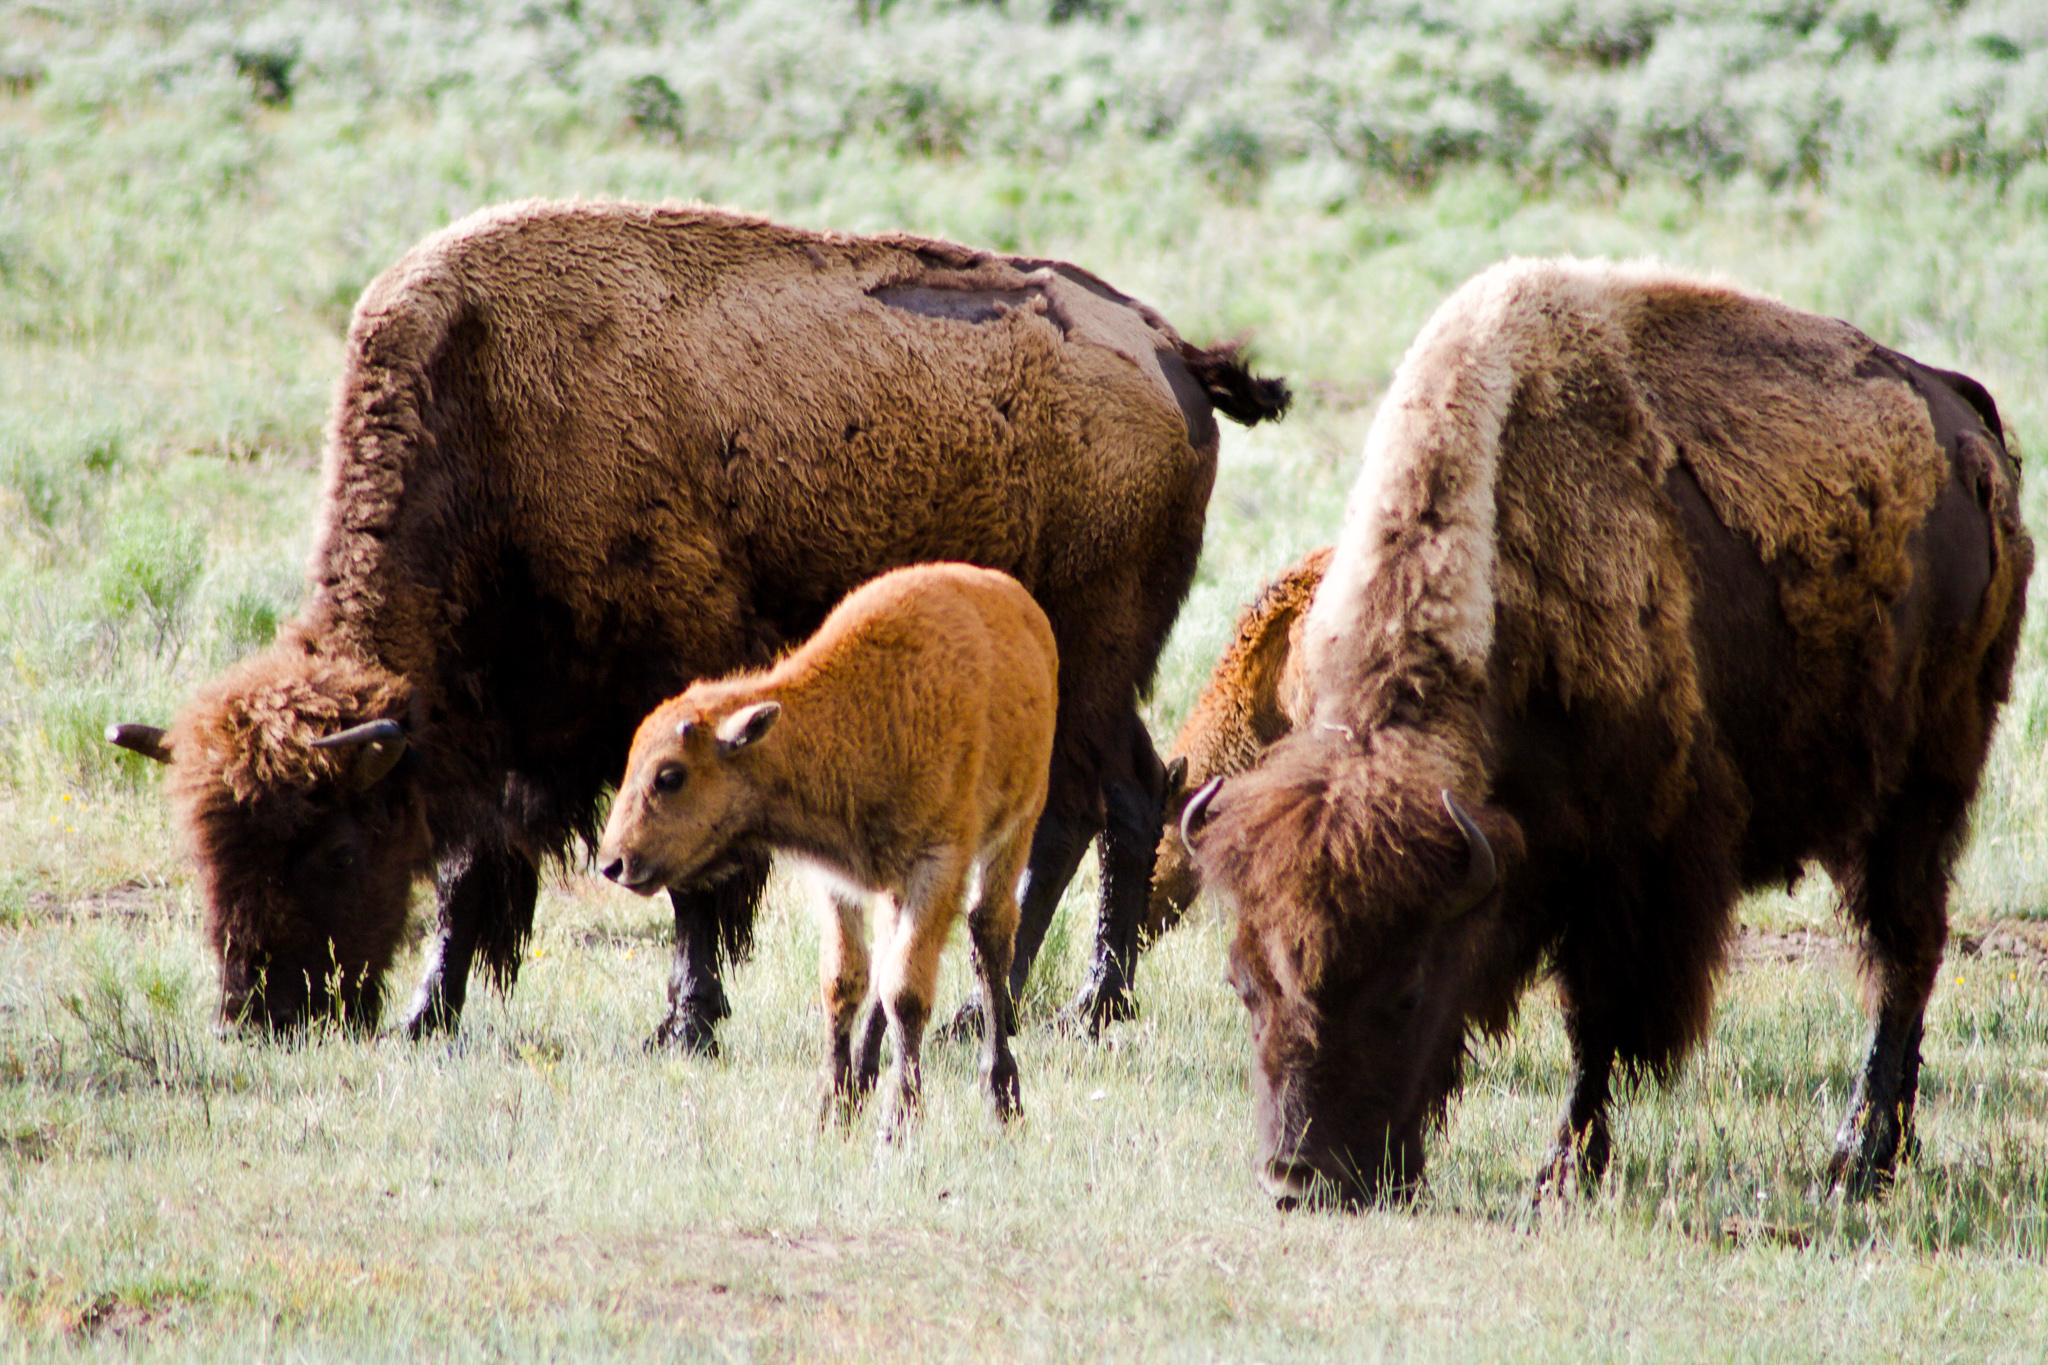 Buffalo adults and calf in Yellowstone National Park